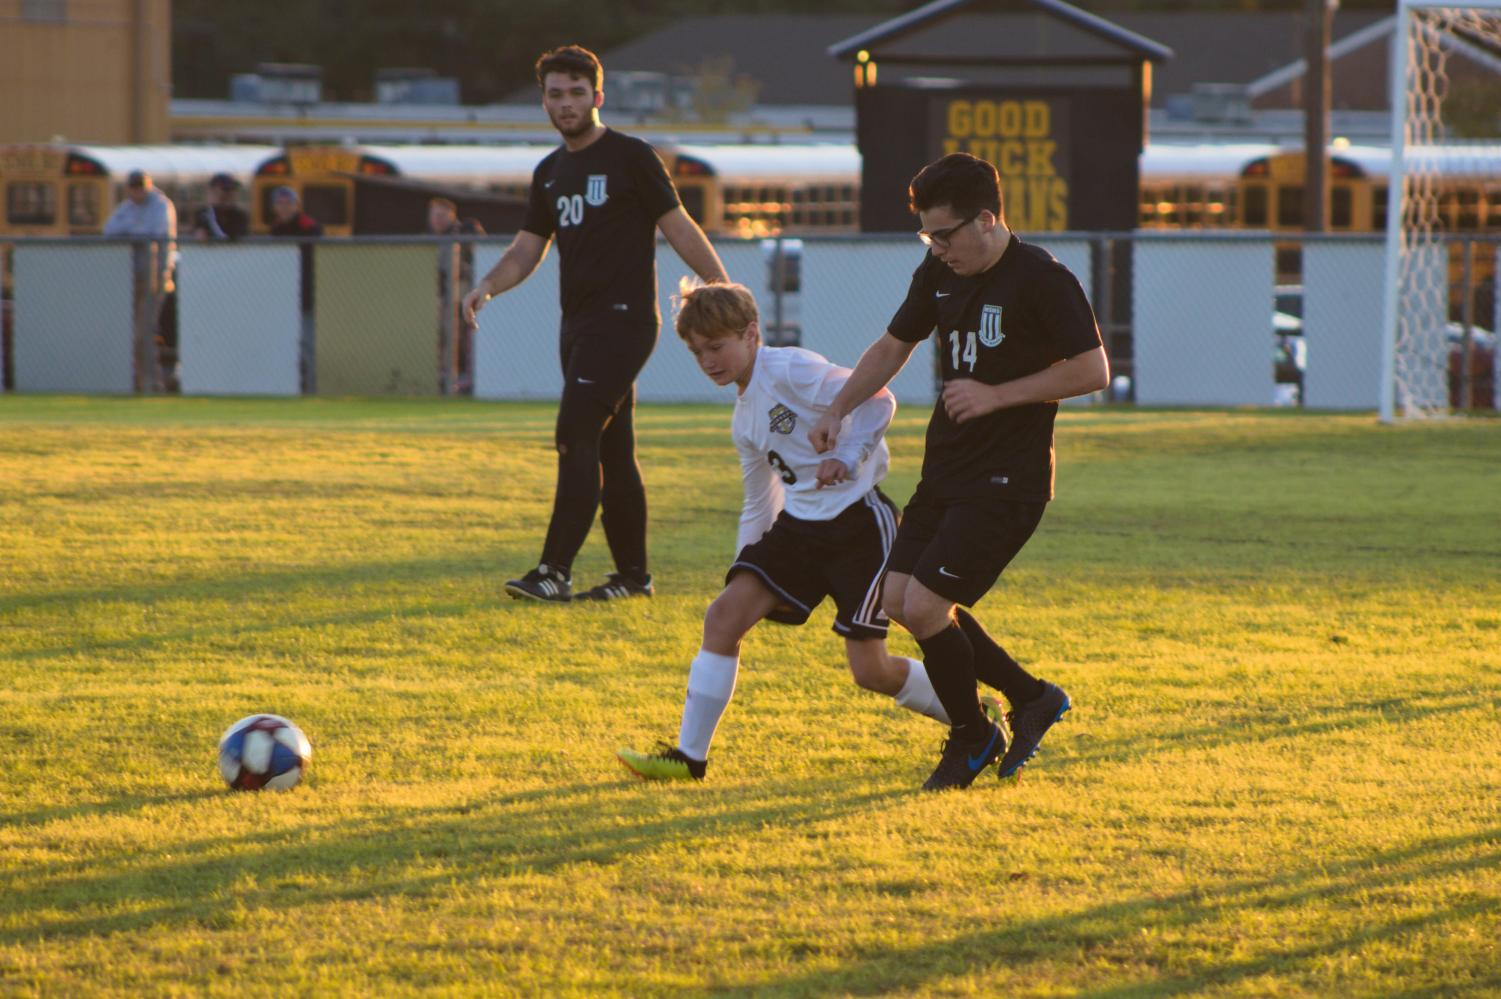 Junior Max Grossman races another player to the soccer ball.